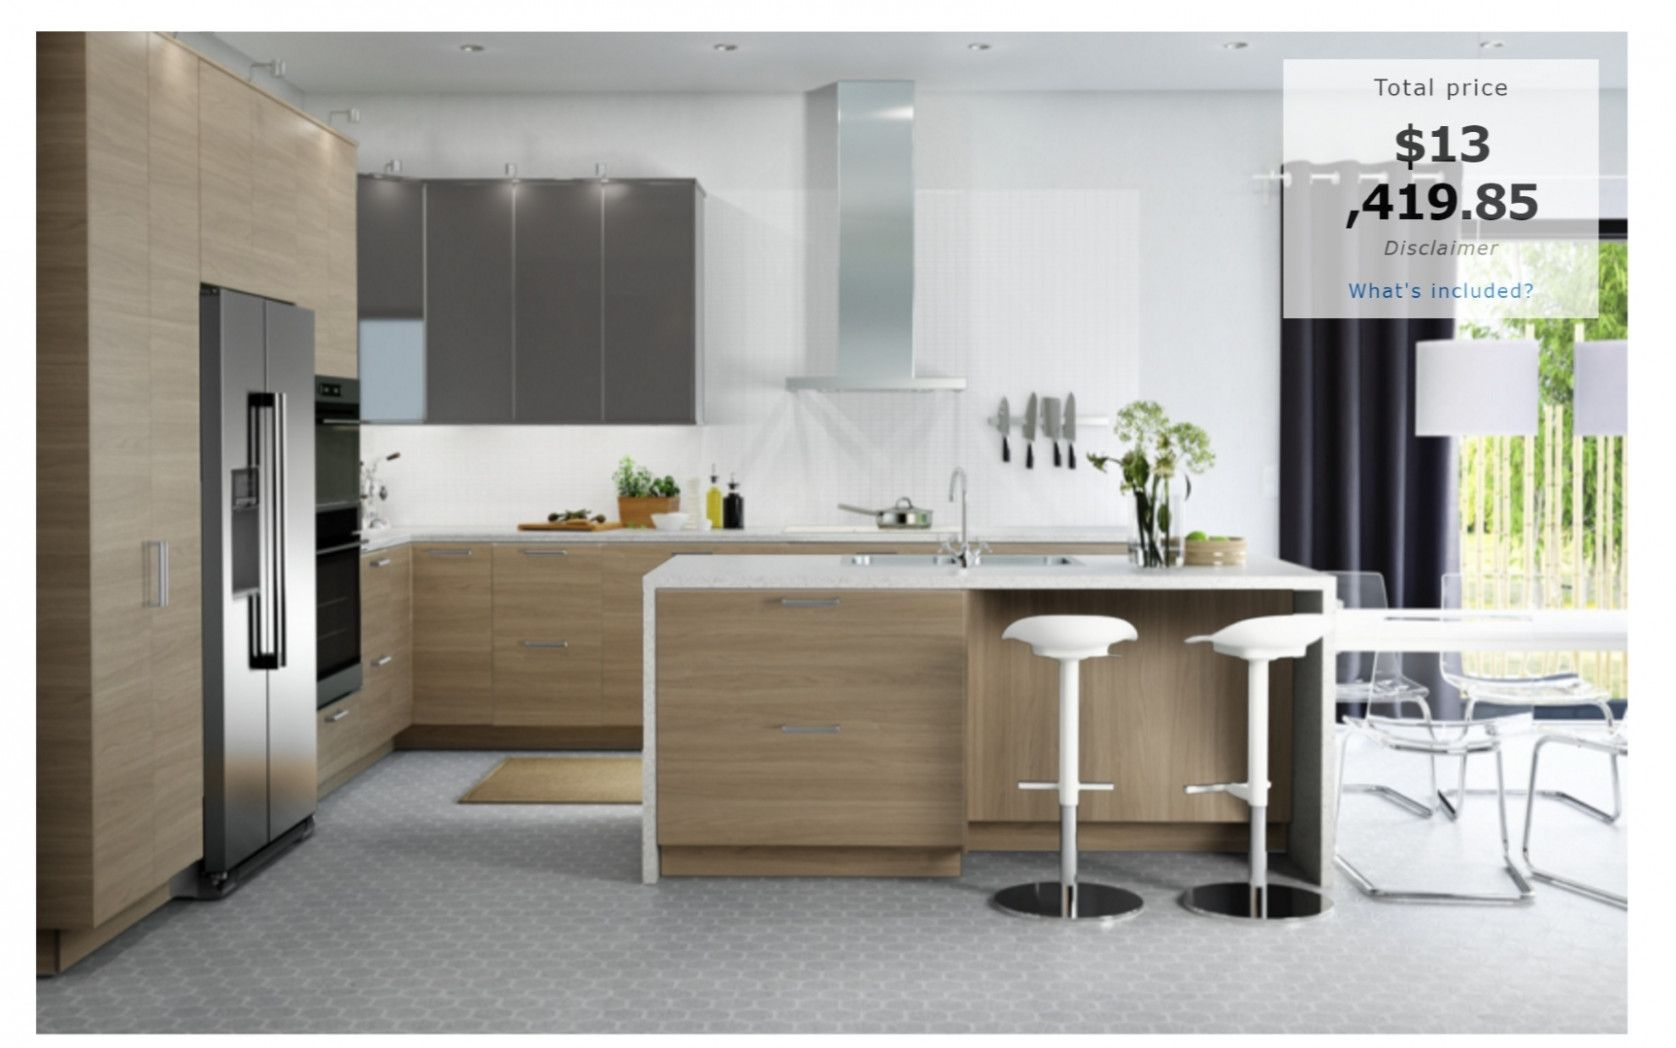 55 Ikea Kitchen Cabinets Cost Kitchen Design And Layout Ideas